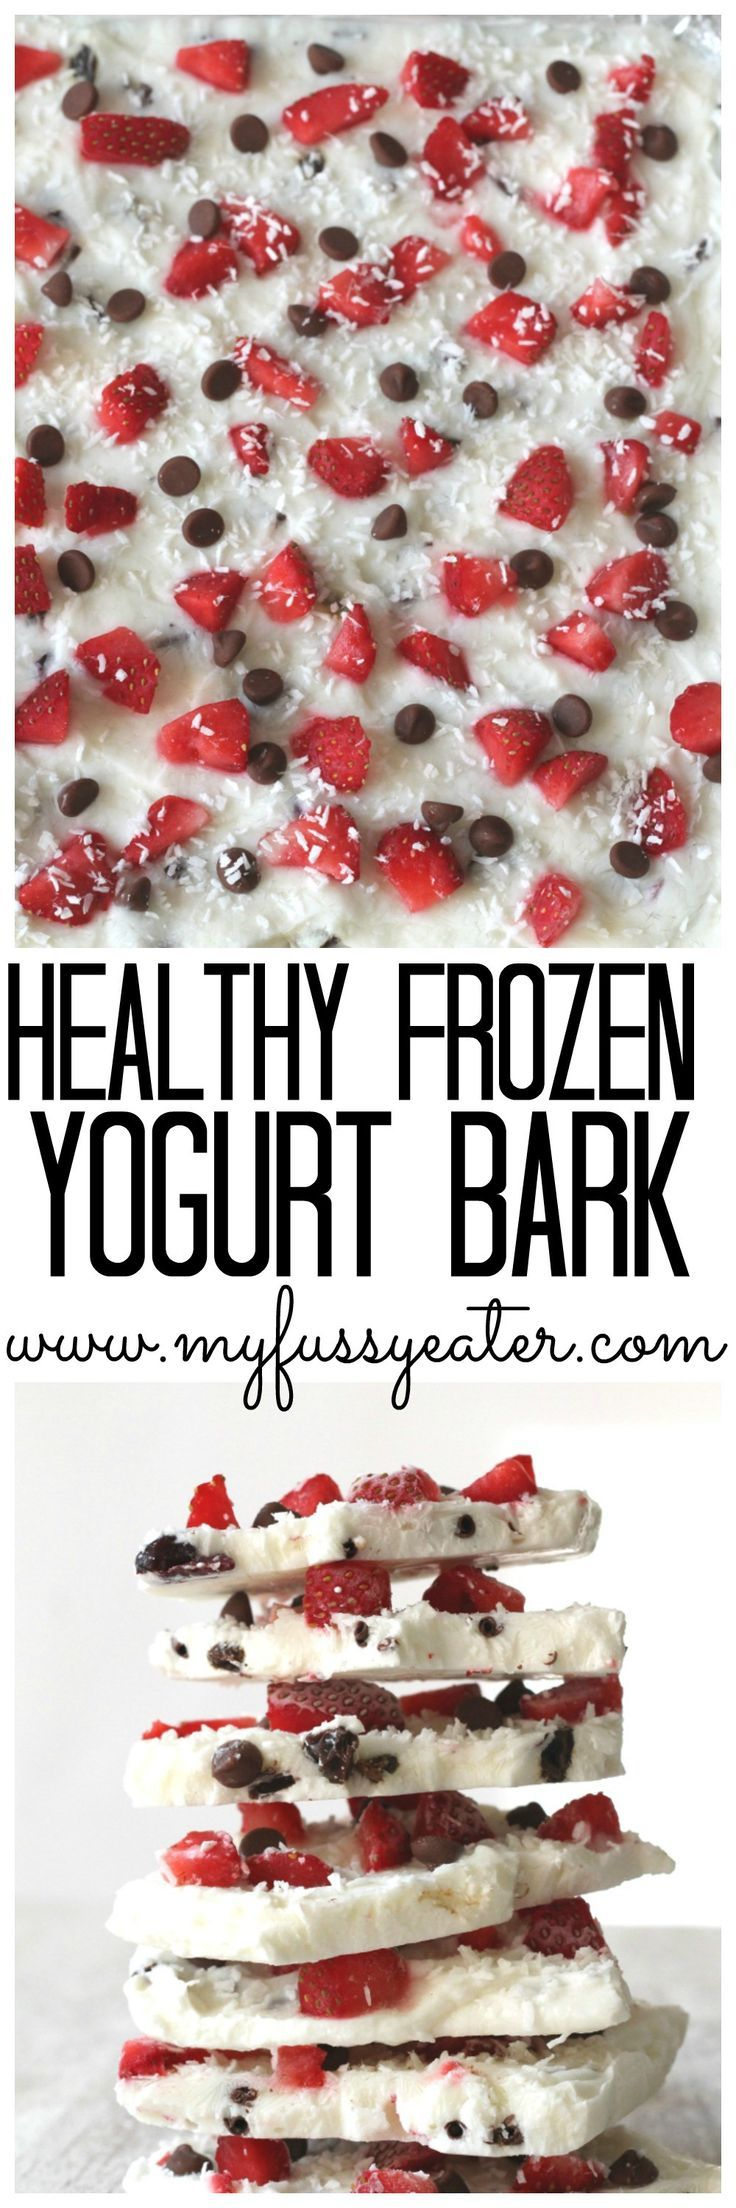 Frozen Yogurt Bark -- This Quick and Healthy Dessert Combines All Your Favorite Things in One Dessert #healthy #yogurt #dessert #recipe